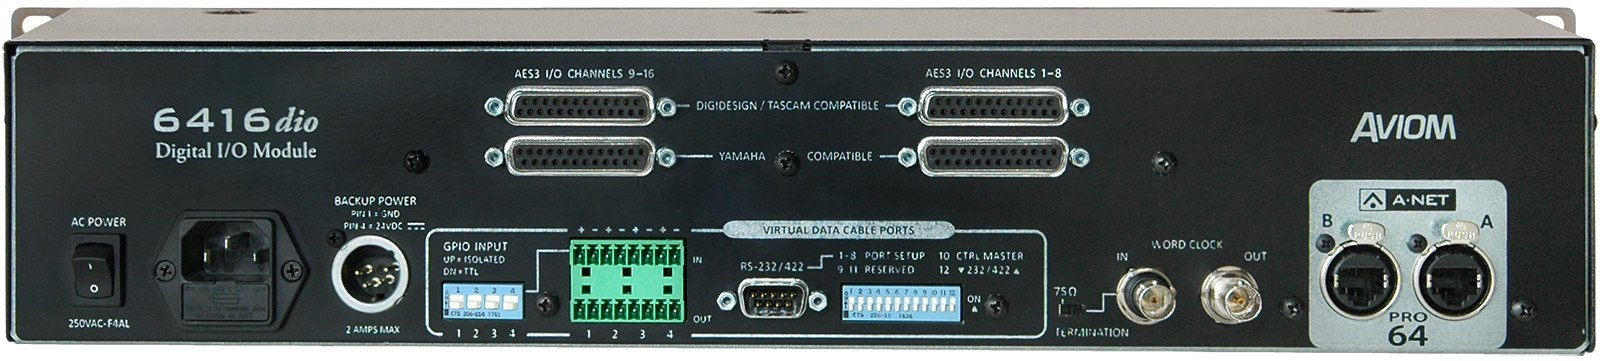 Pro64 Series 16-Channel AES3 Digital I/O Module with DB25 Connectors